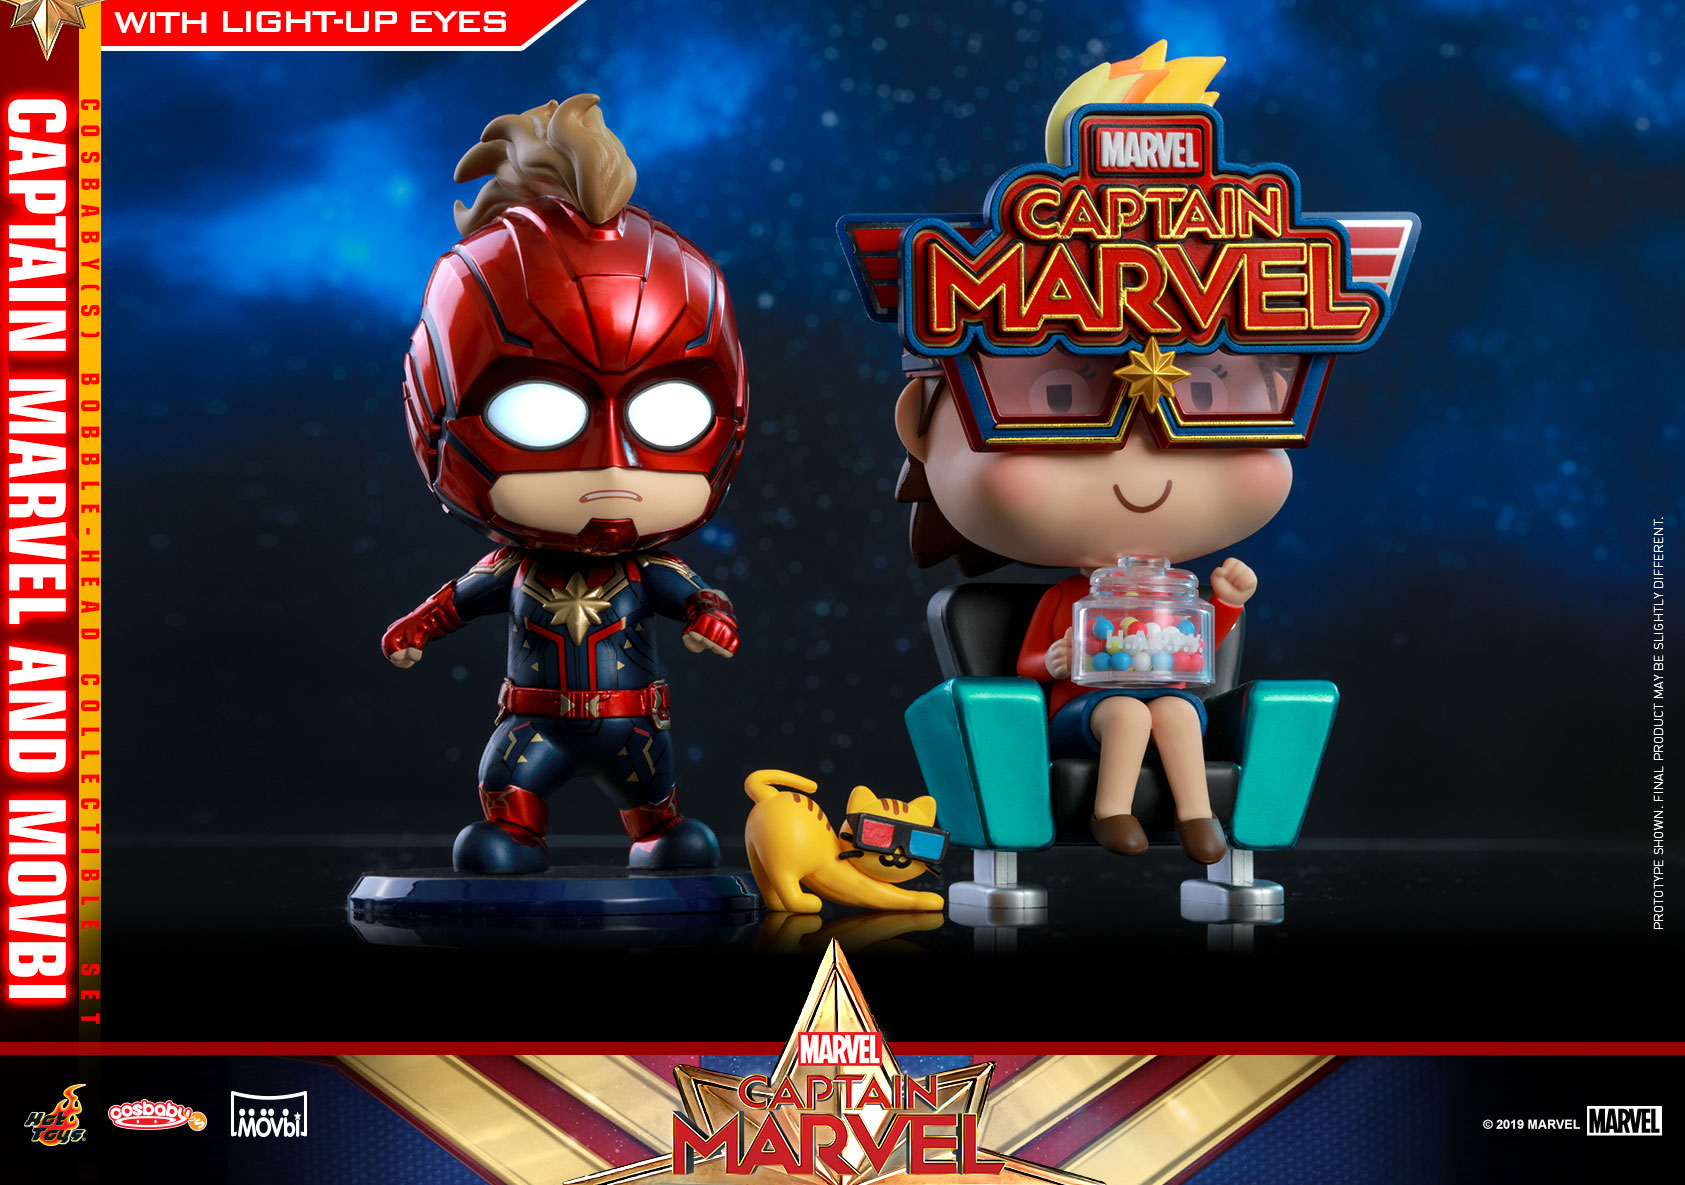 Hot-Toys---Captain-Marvel---Captain-Marvel-and-Movbi-Cosbaby-Bobble-head-Collectible-Set-(S)_PR1